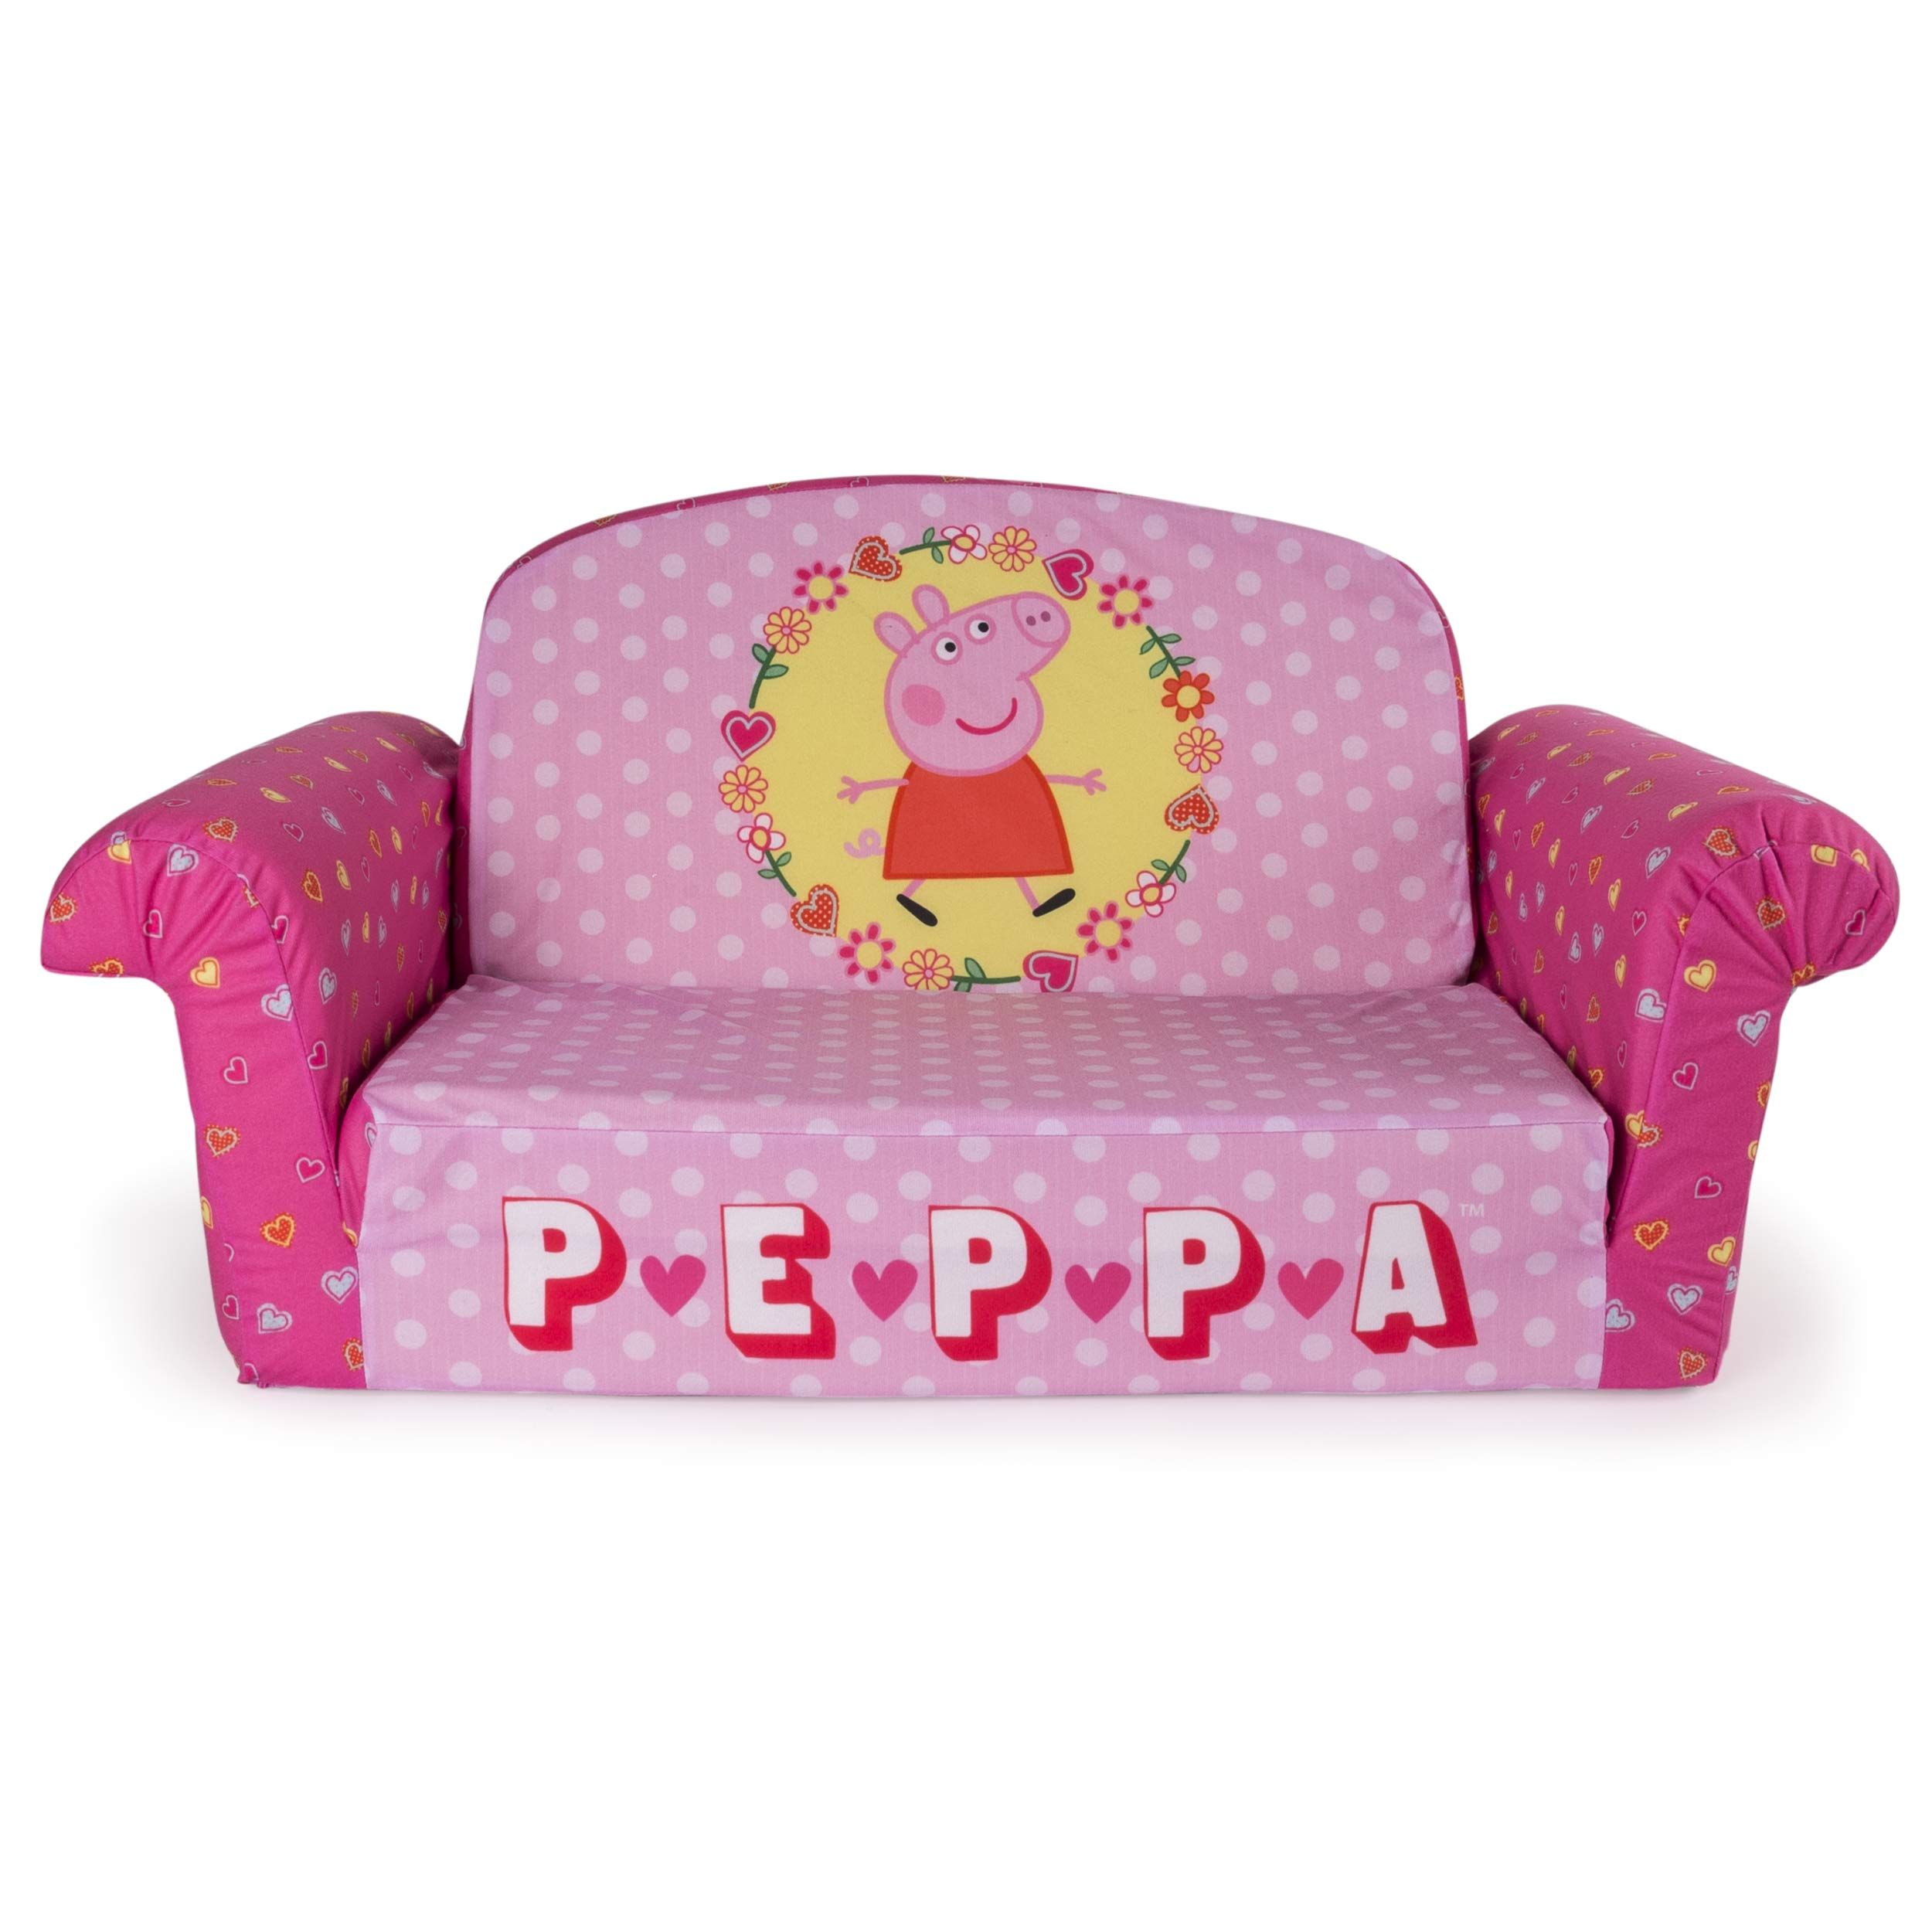 Marshmallow Furniture, Children's 2 in 1 Flip Open Foam Sofa, Peppa Pig, by Spin Master by Marshmallow Furniture